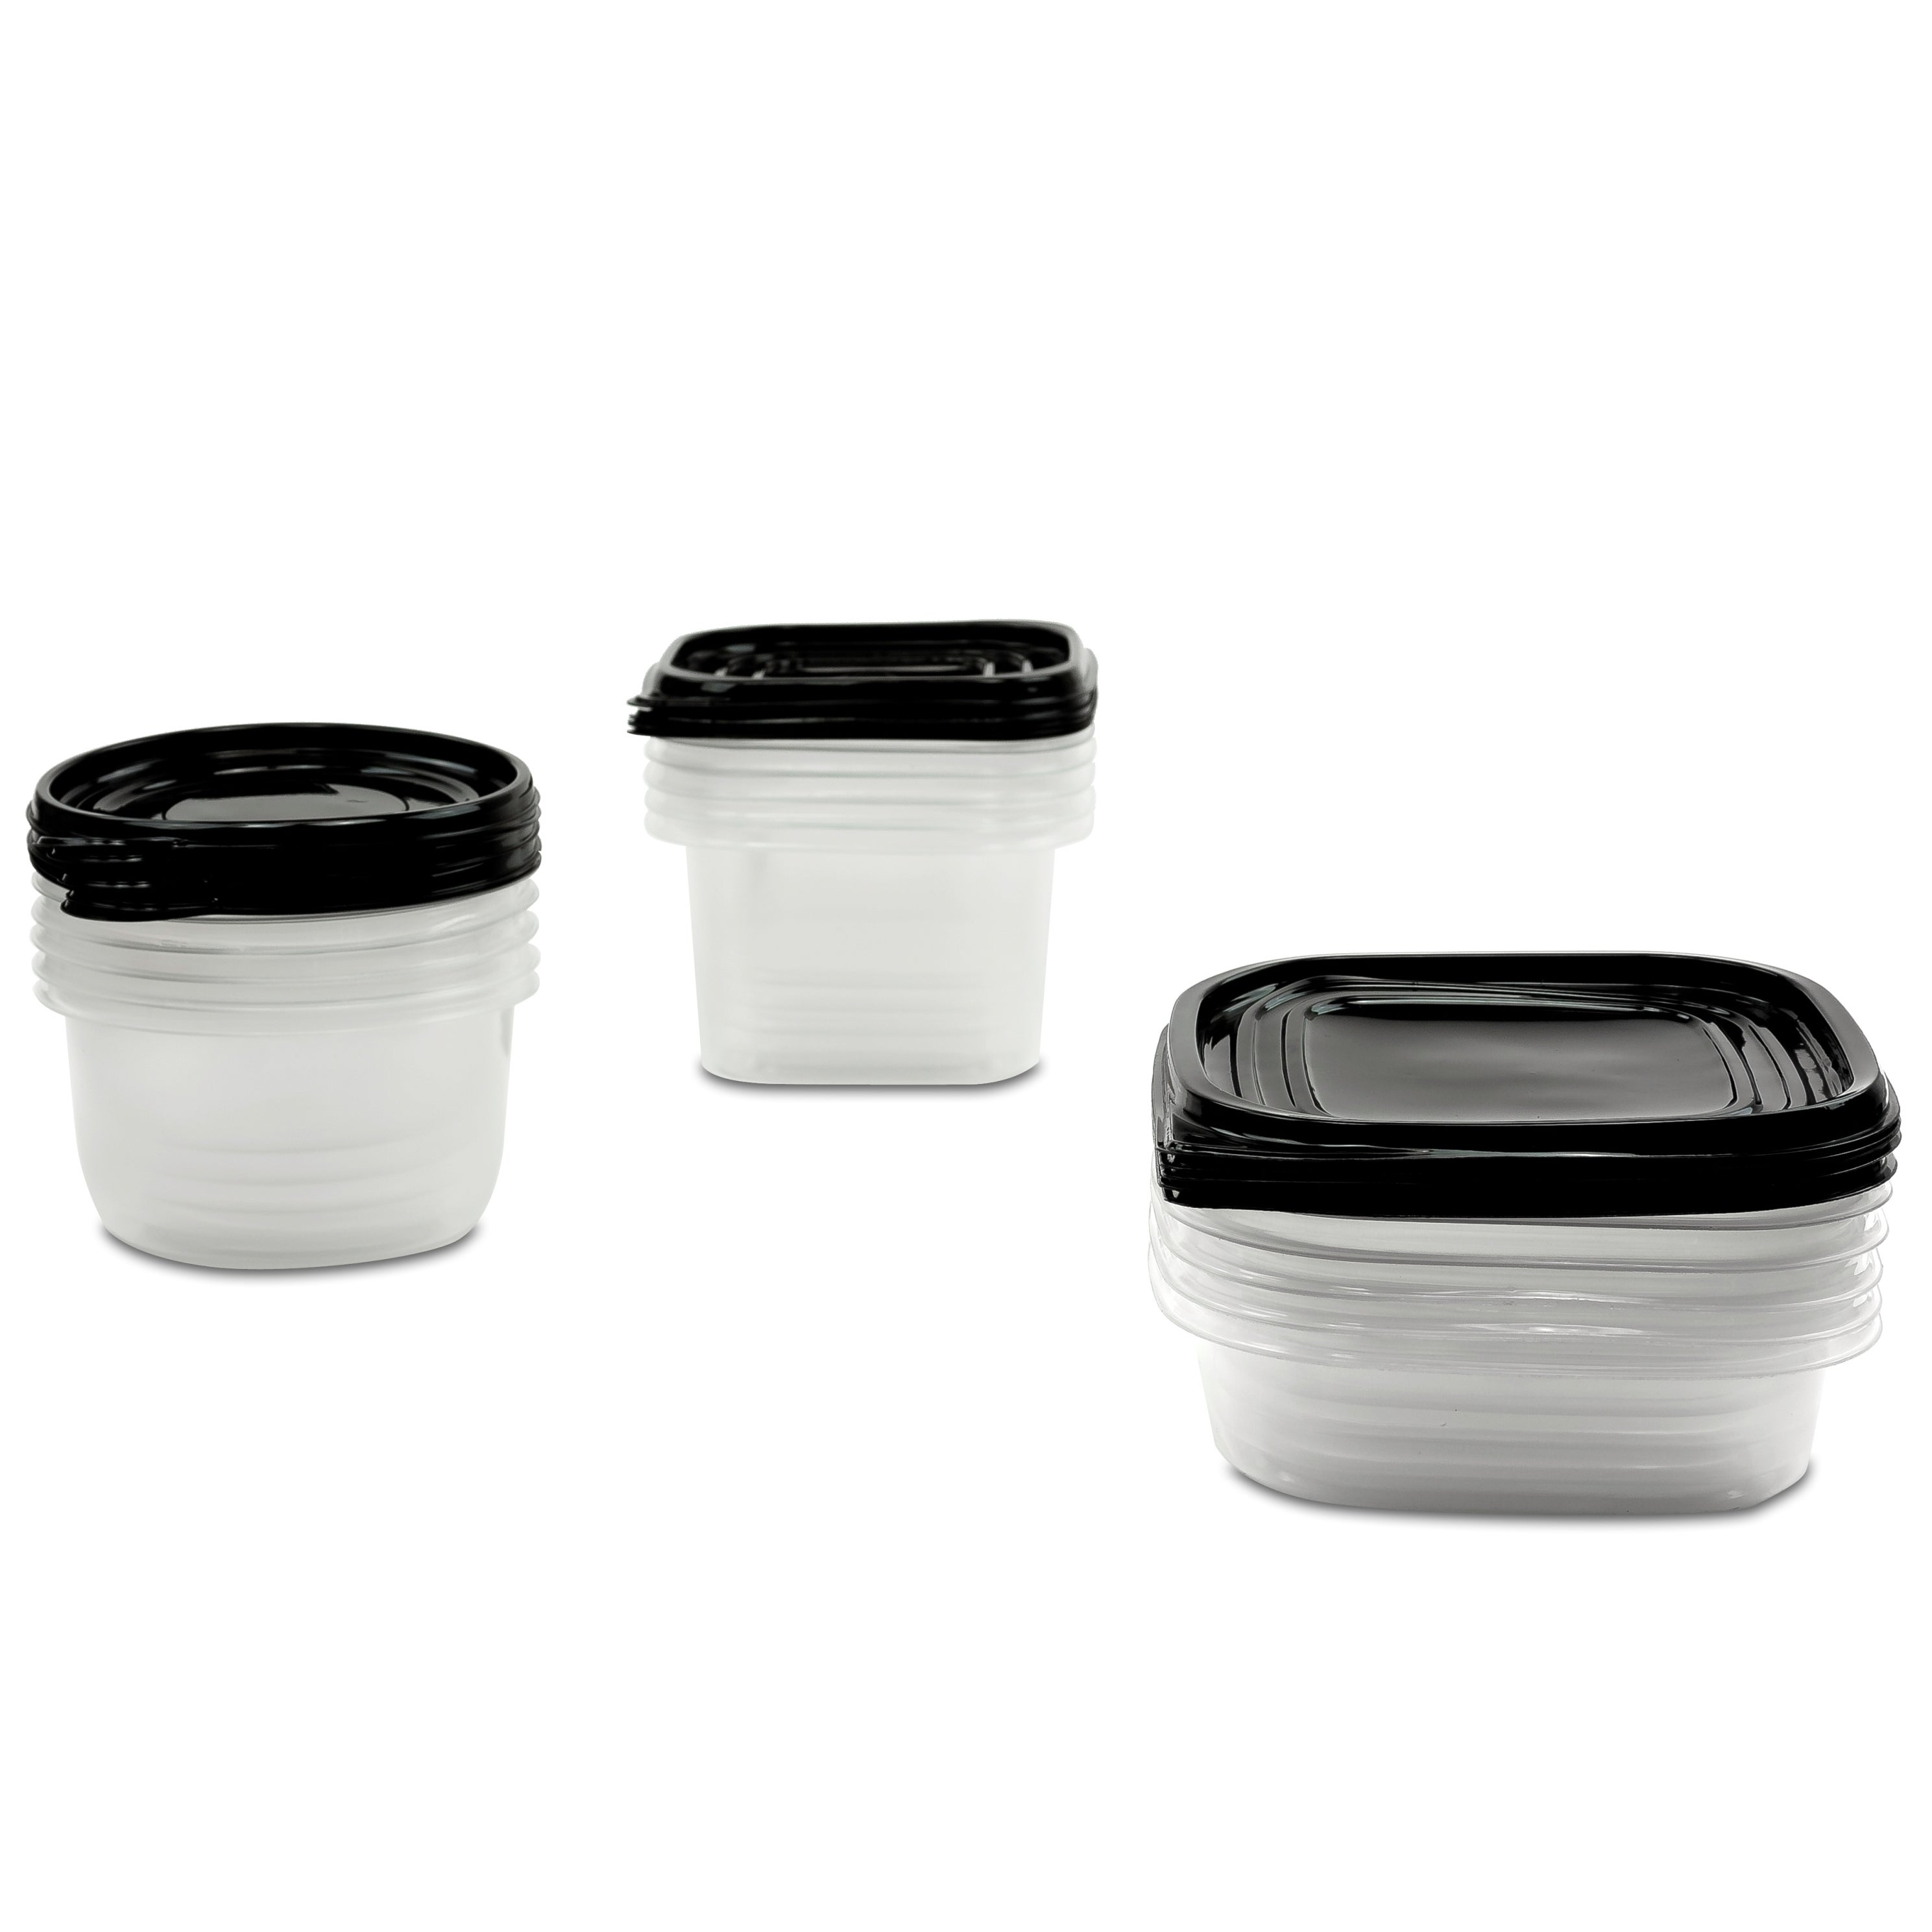 Shop 30 Pc Reusable Plastic Food Storage Containers Set with Air